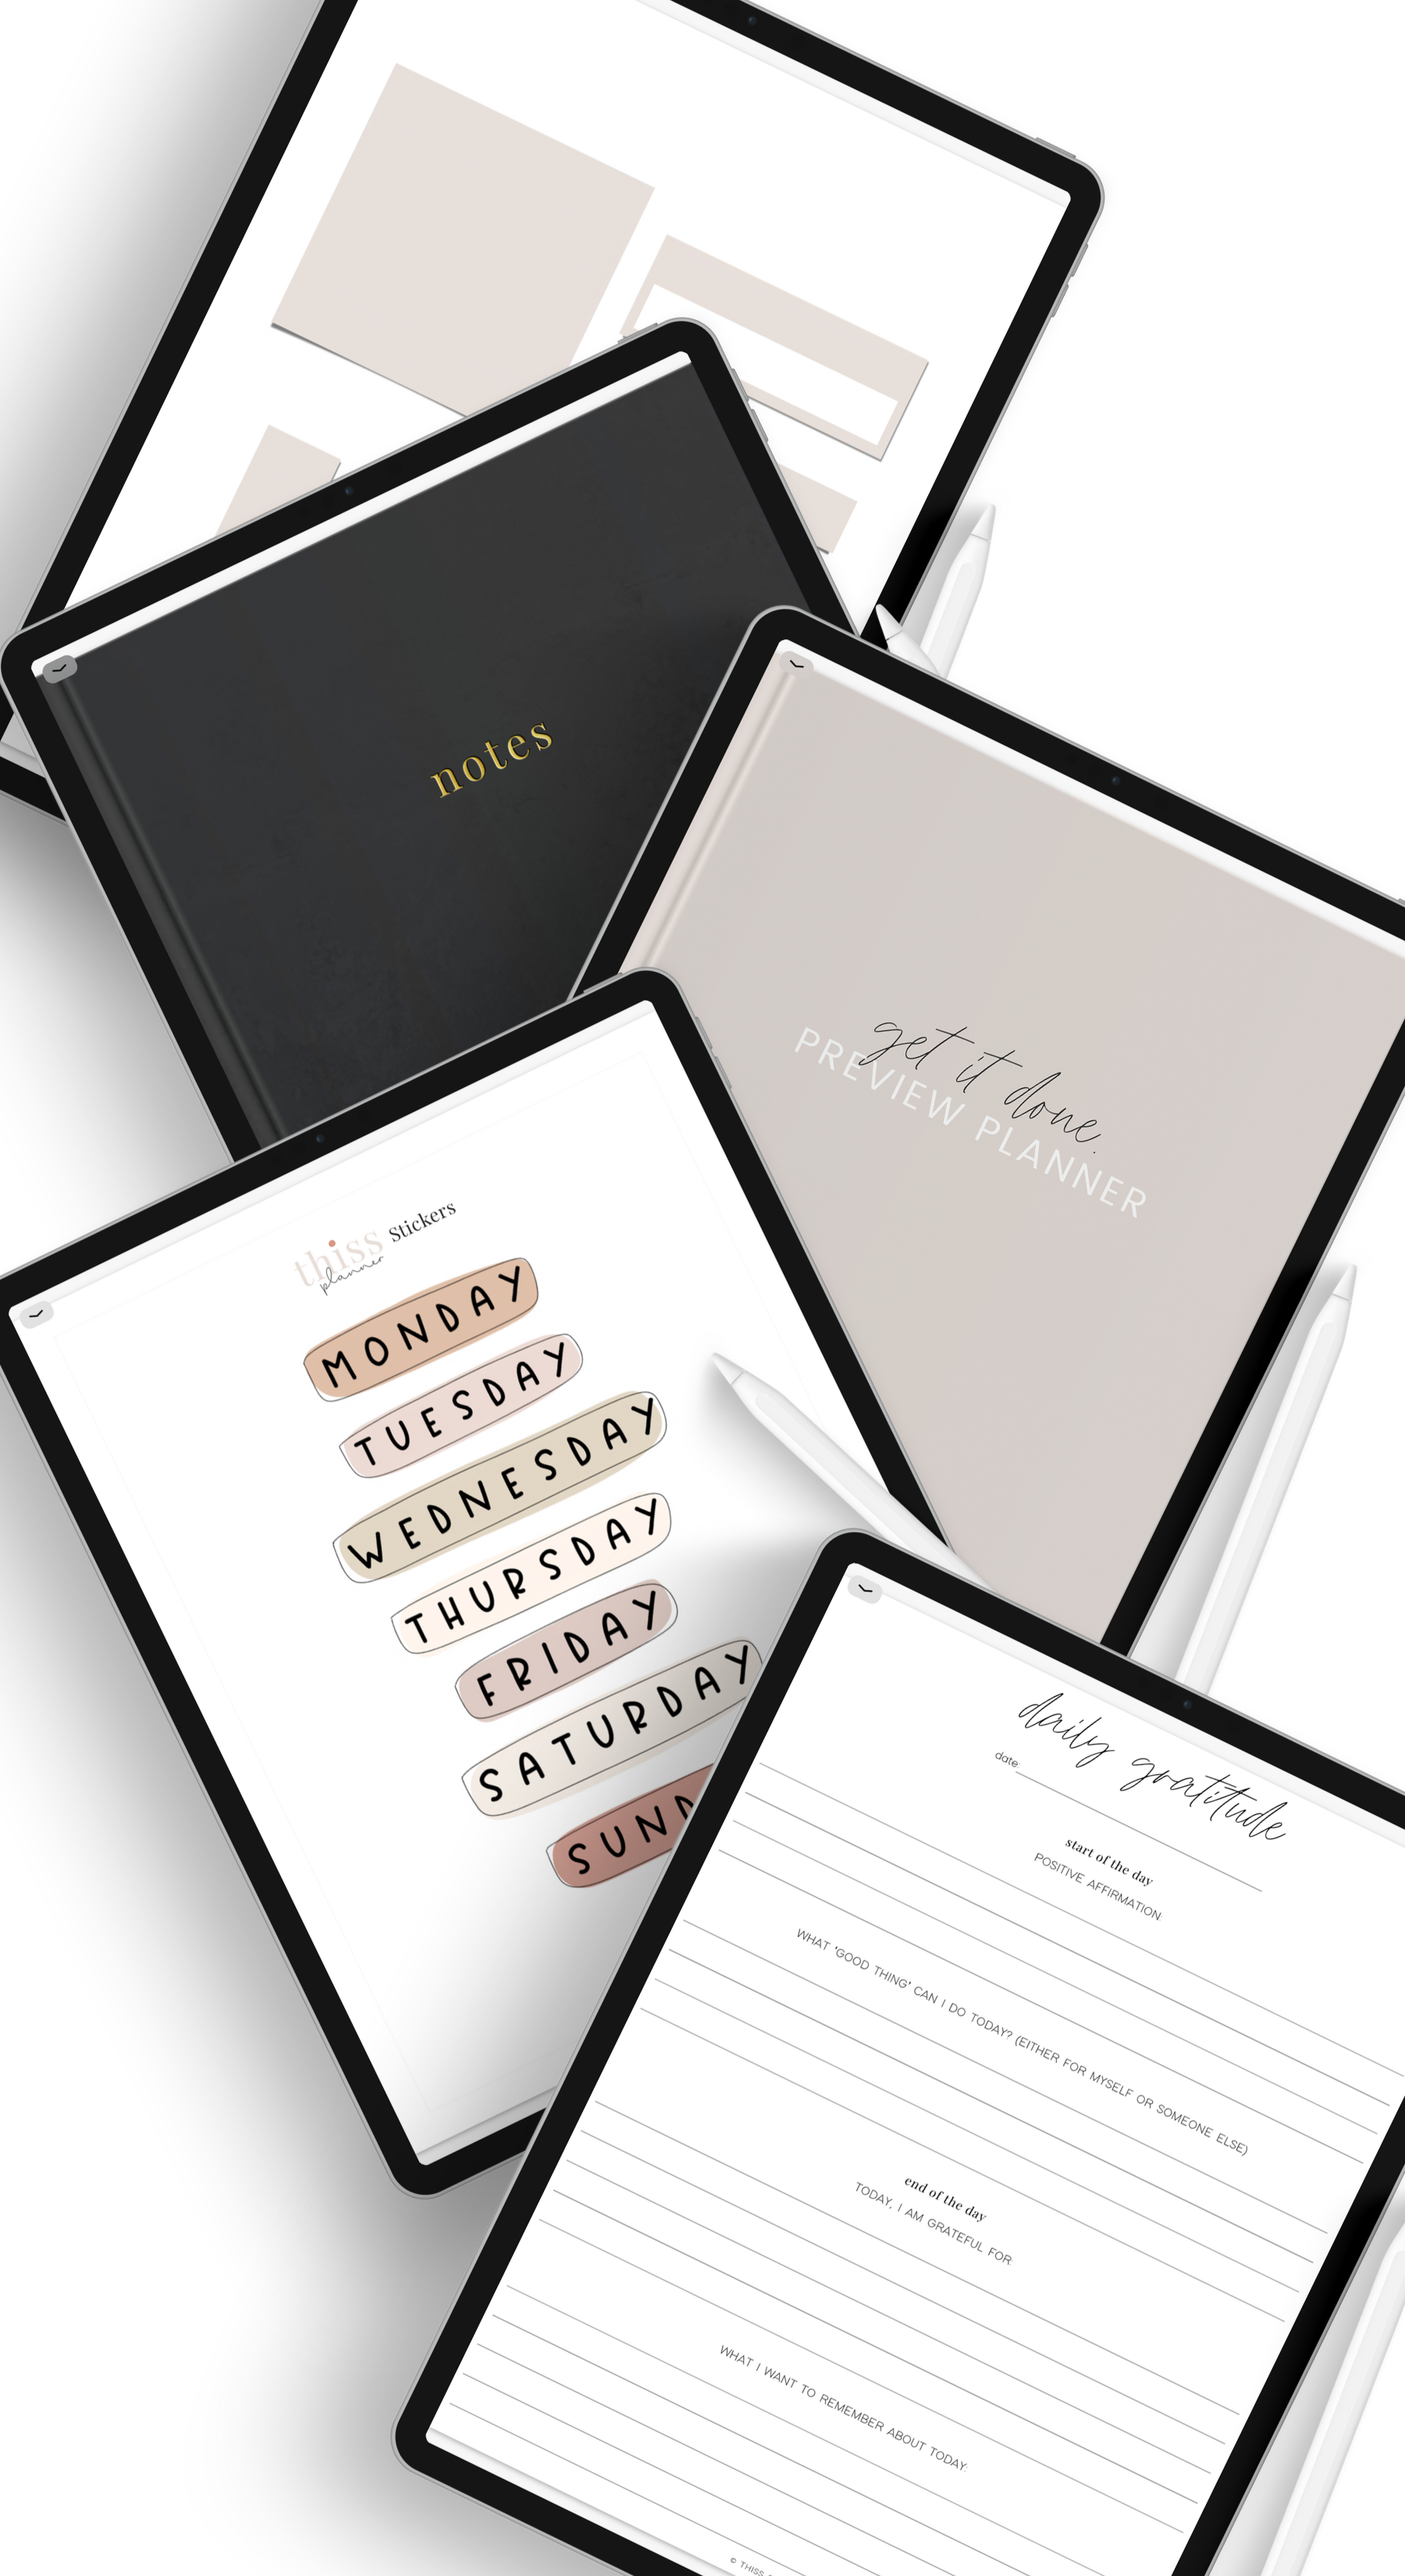 thiss planner digital planner freebies